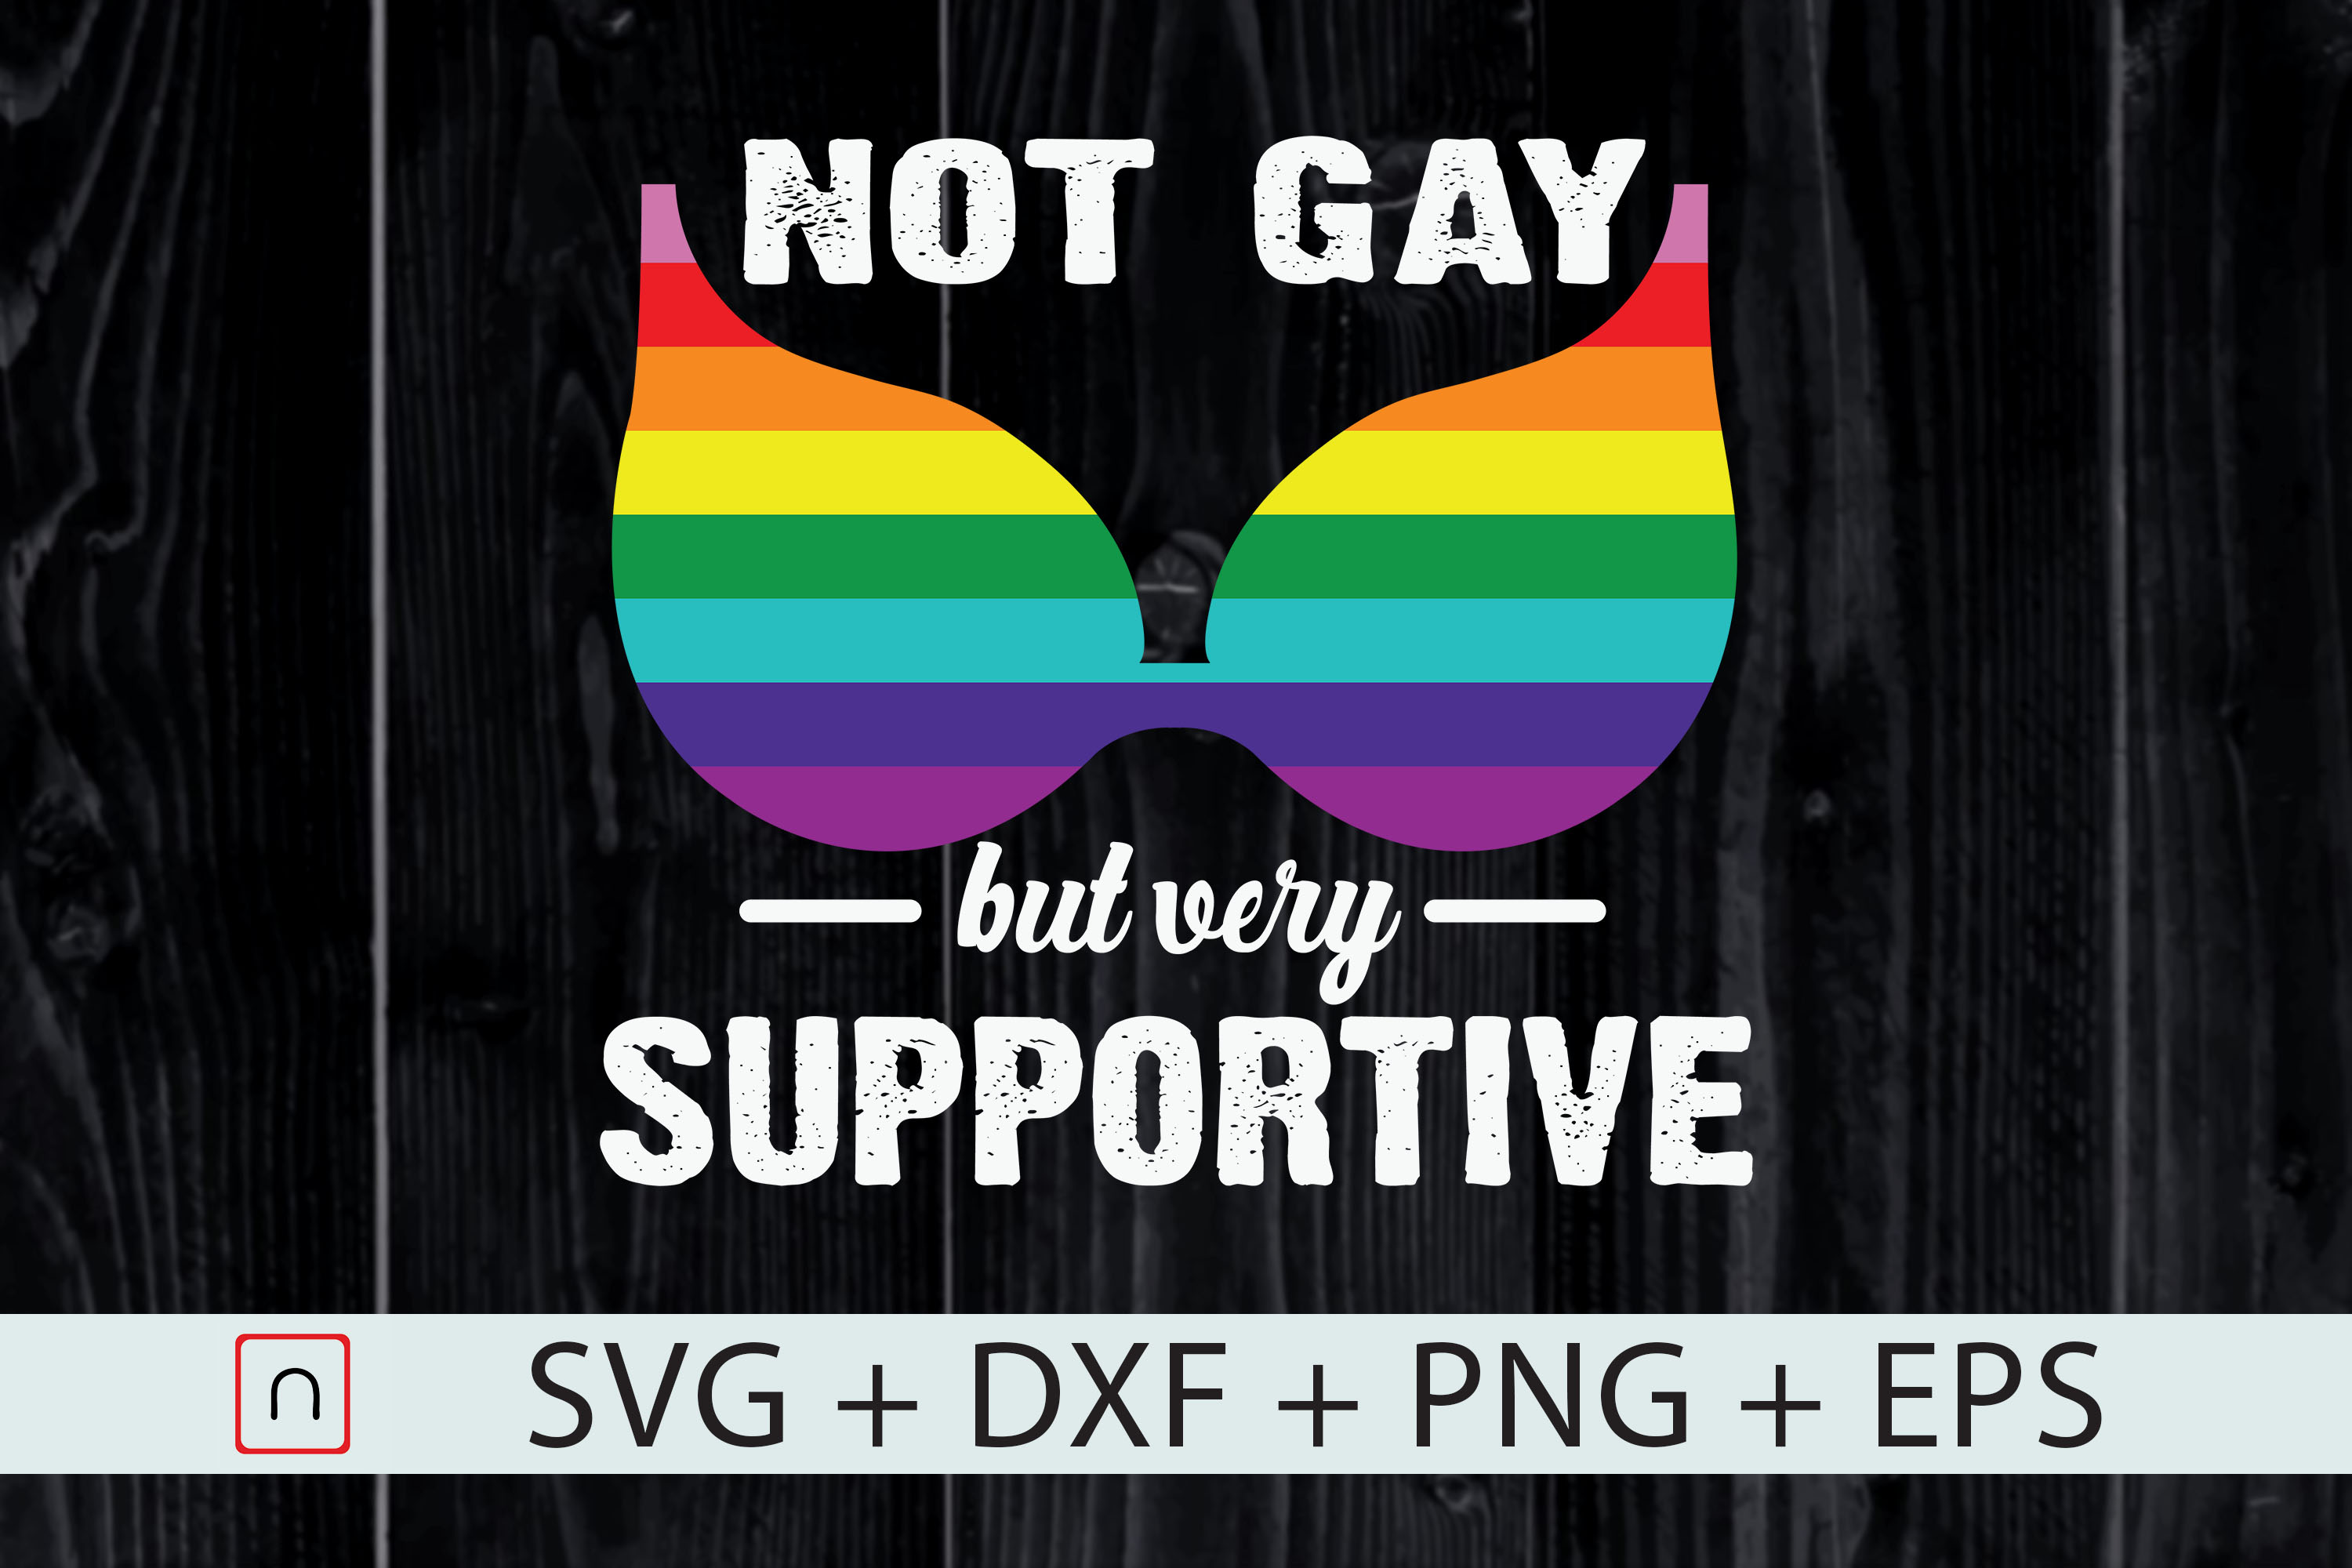 Download Free Not Gay But Very Supportive Graphic By Novalia Creative Fabrica for Cricut Explore, Silhouette and other cutting machines.